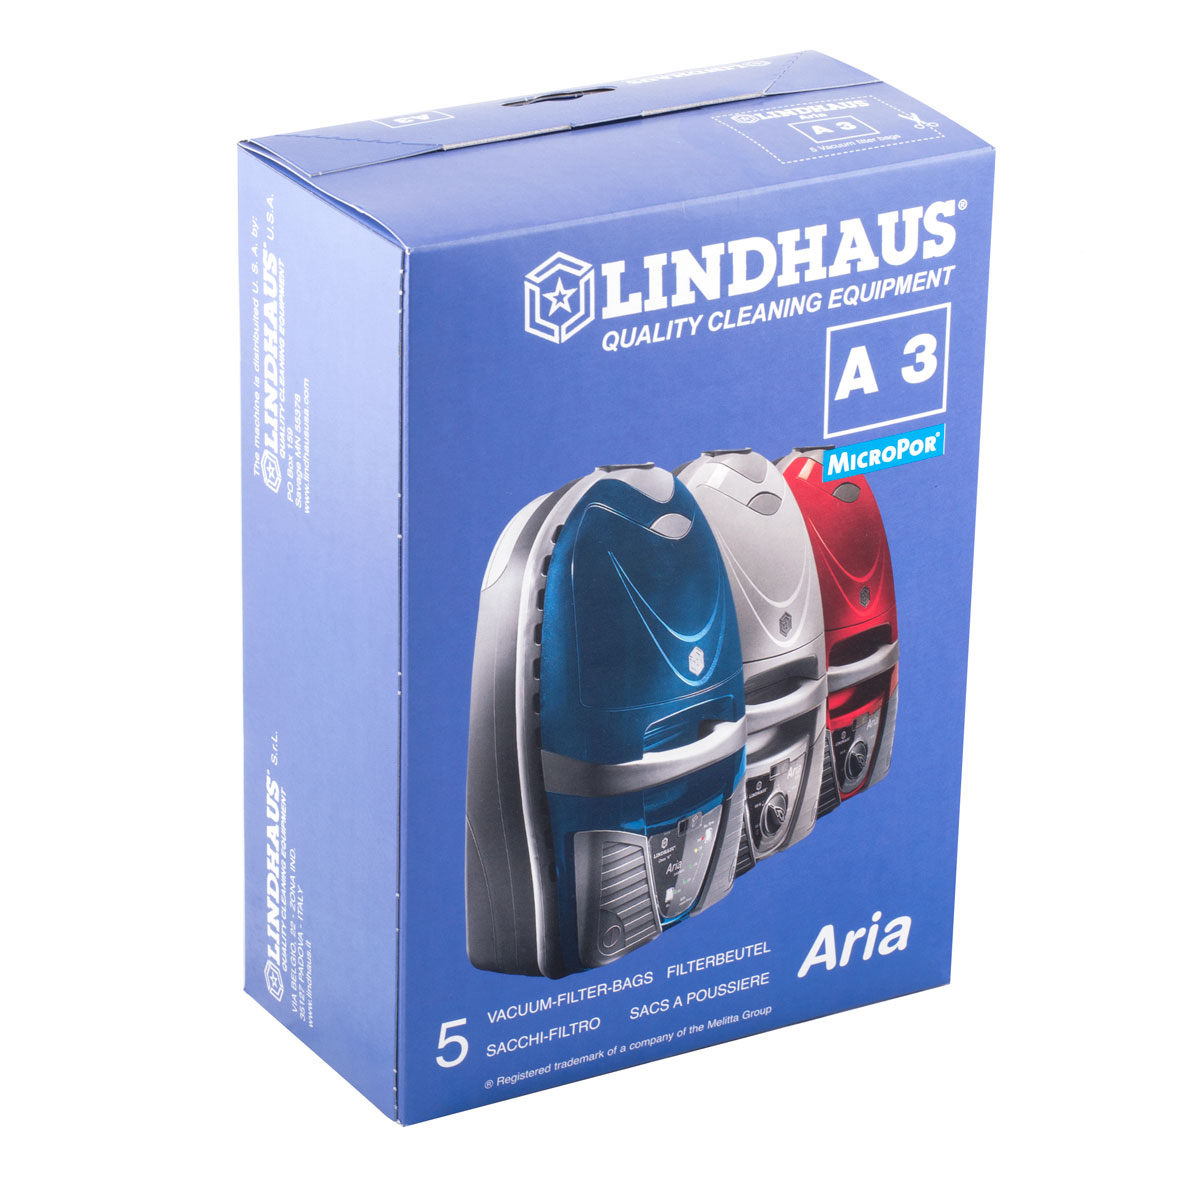 Aria A3 Canister Bag Lh1808 Micropore 5 Pack